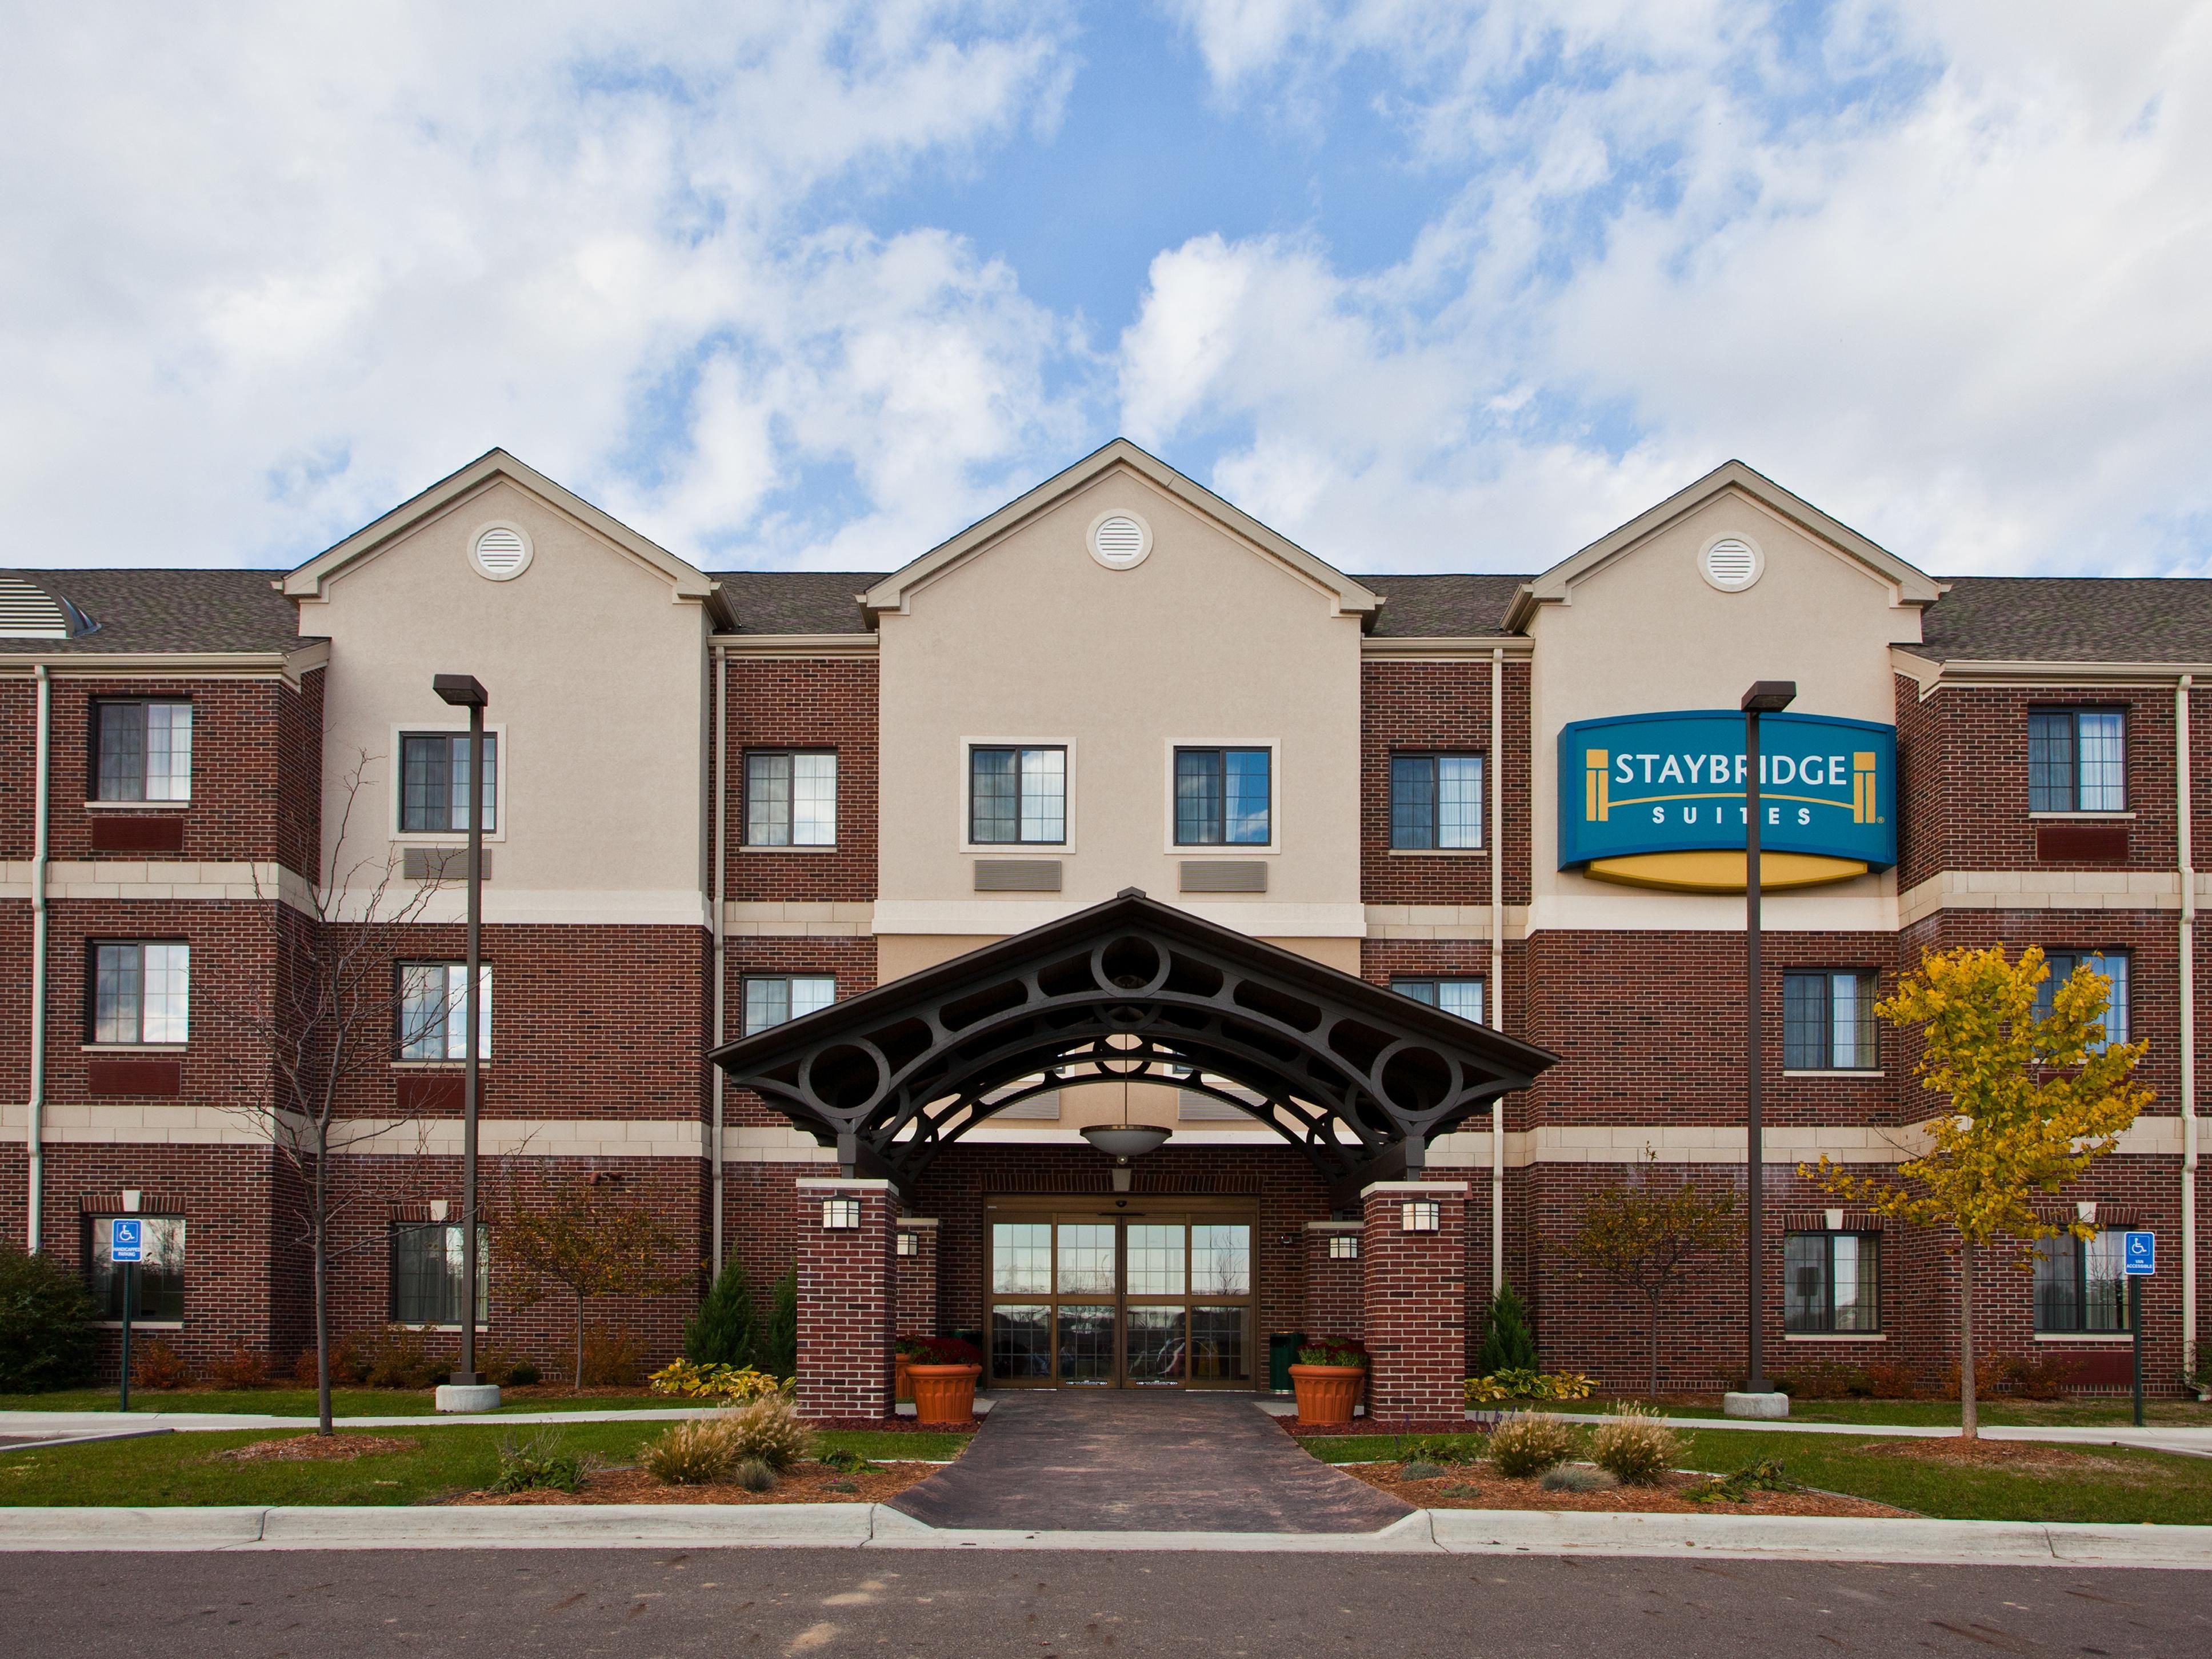 Okemos Hotels Staybridge Suites Lansing Extended Stay Hotel In Michigan